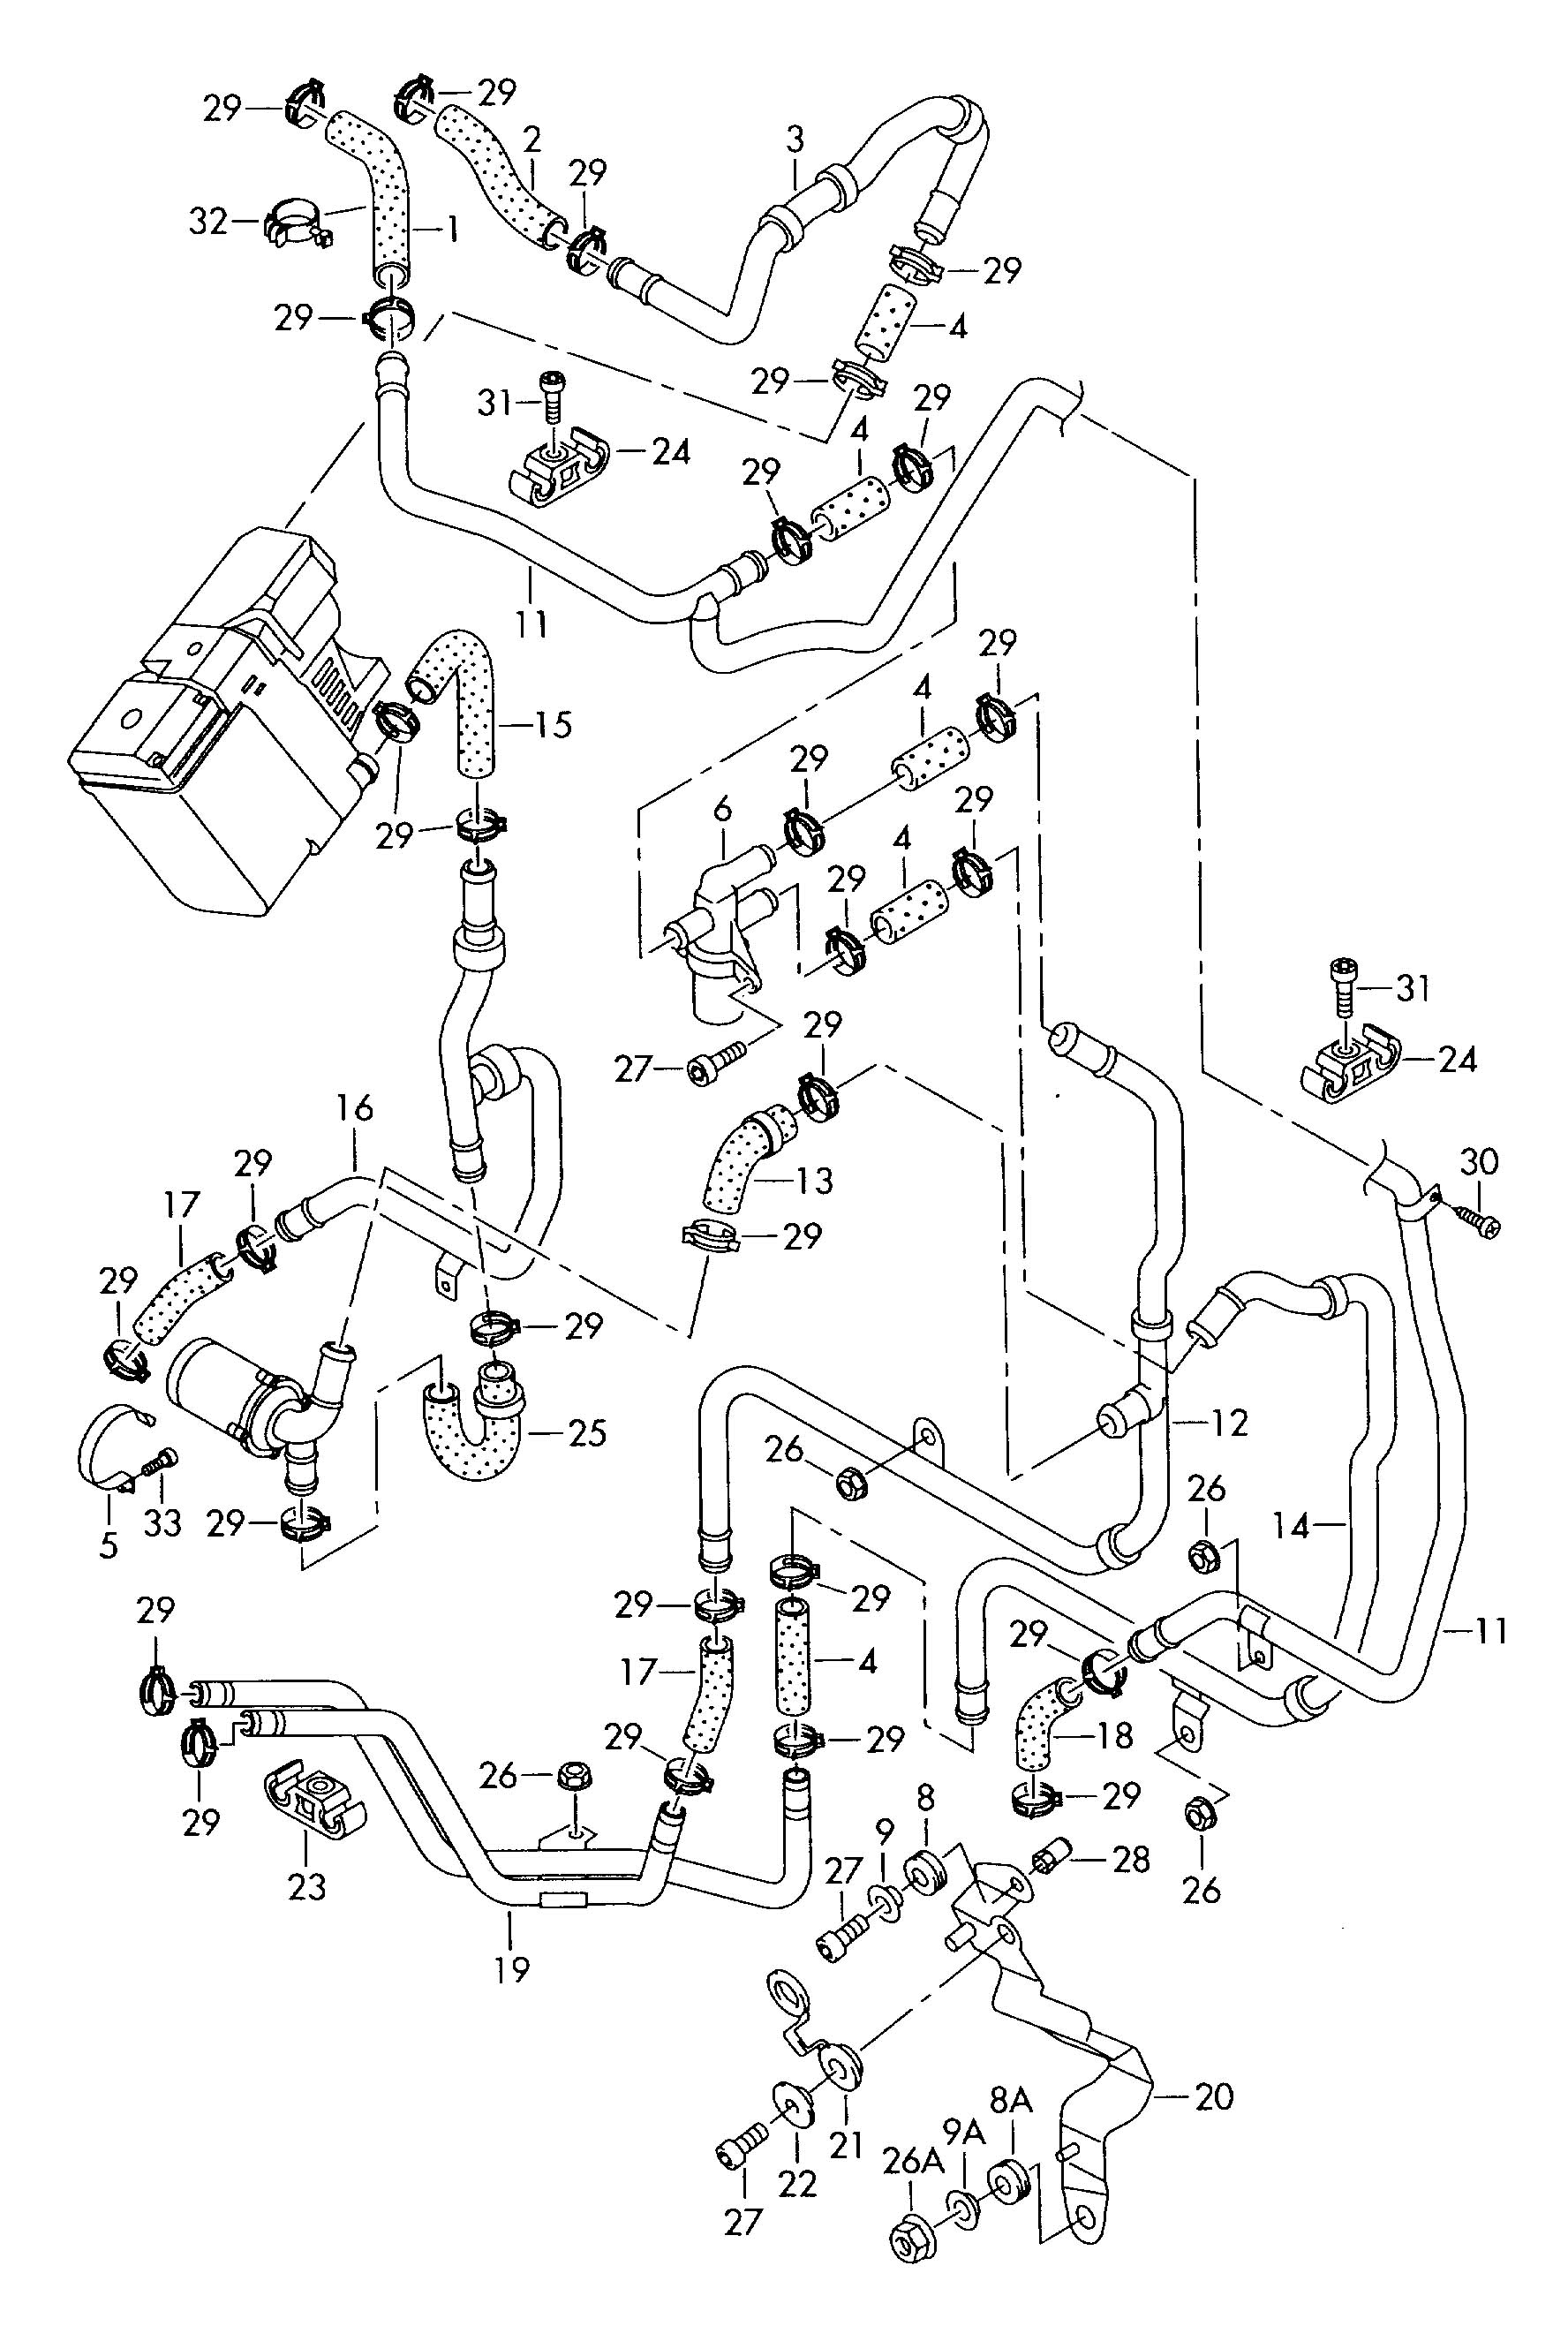 Volkswagen Touareg Heater coolant hoses and pipes